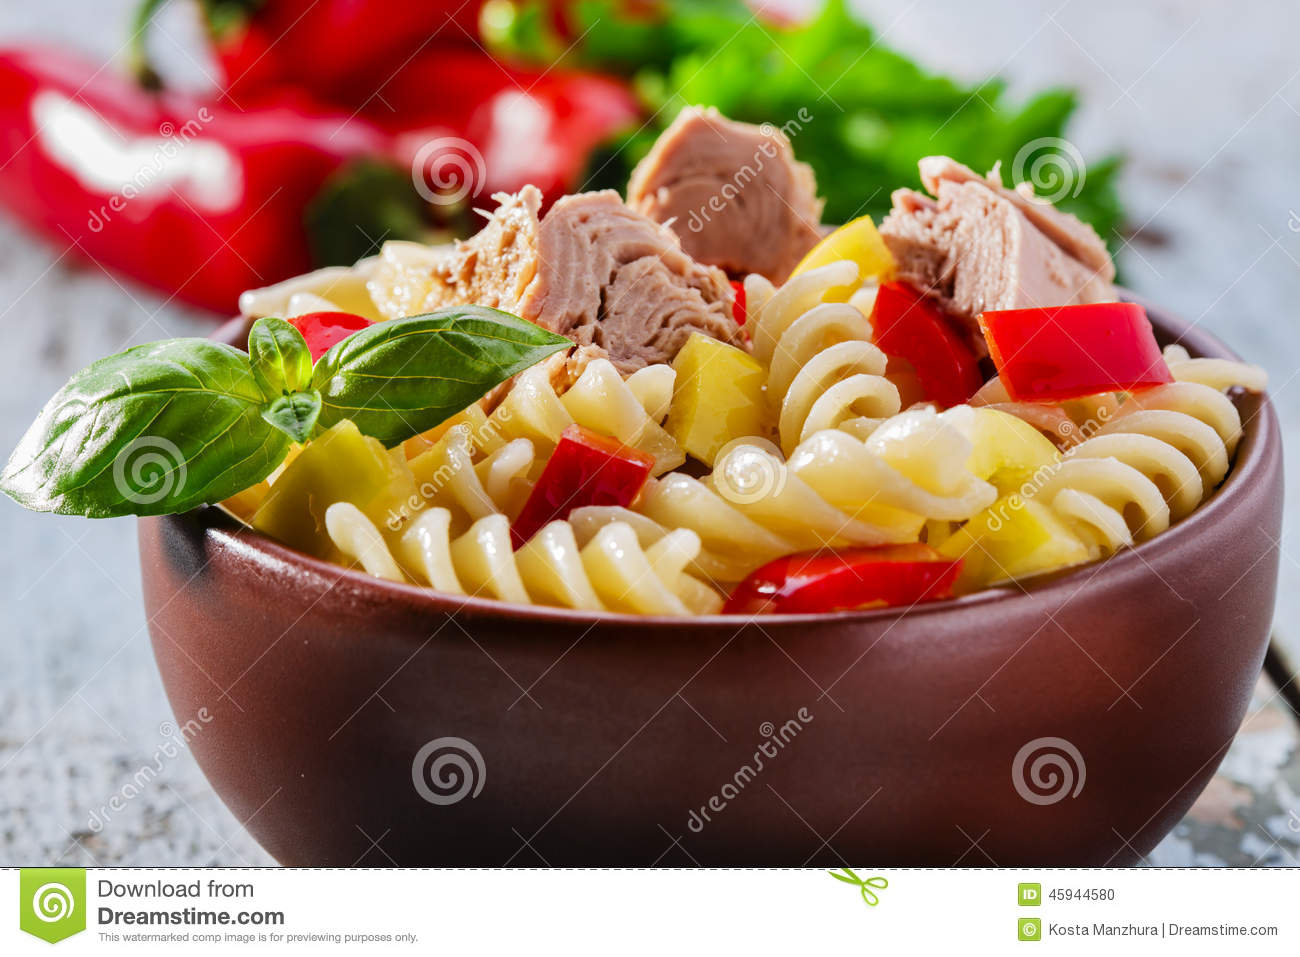 Pasta Salad With Tomato, Mozzarella, Pine Nuts And Basil Royalty-Free ...